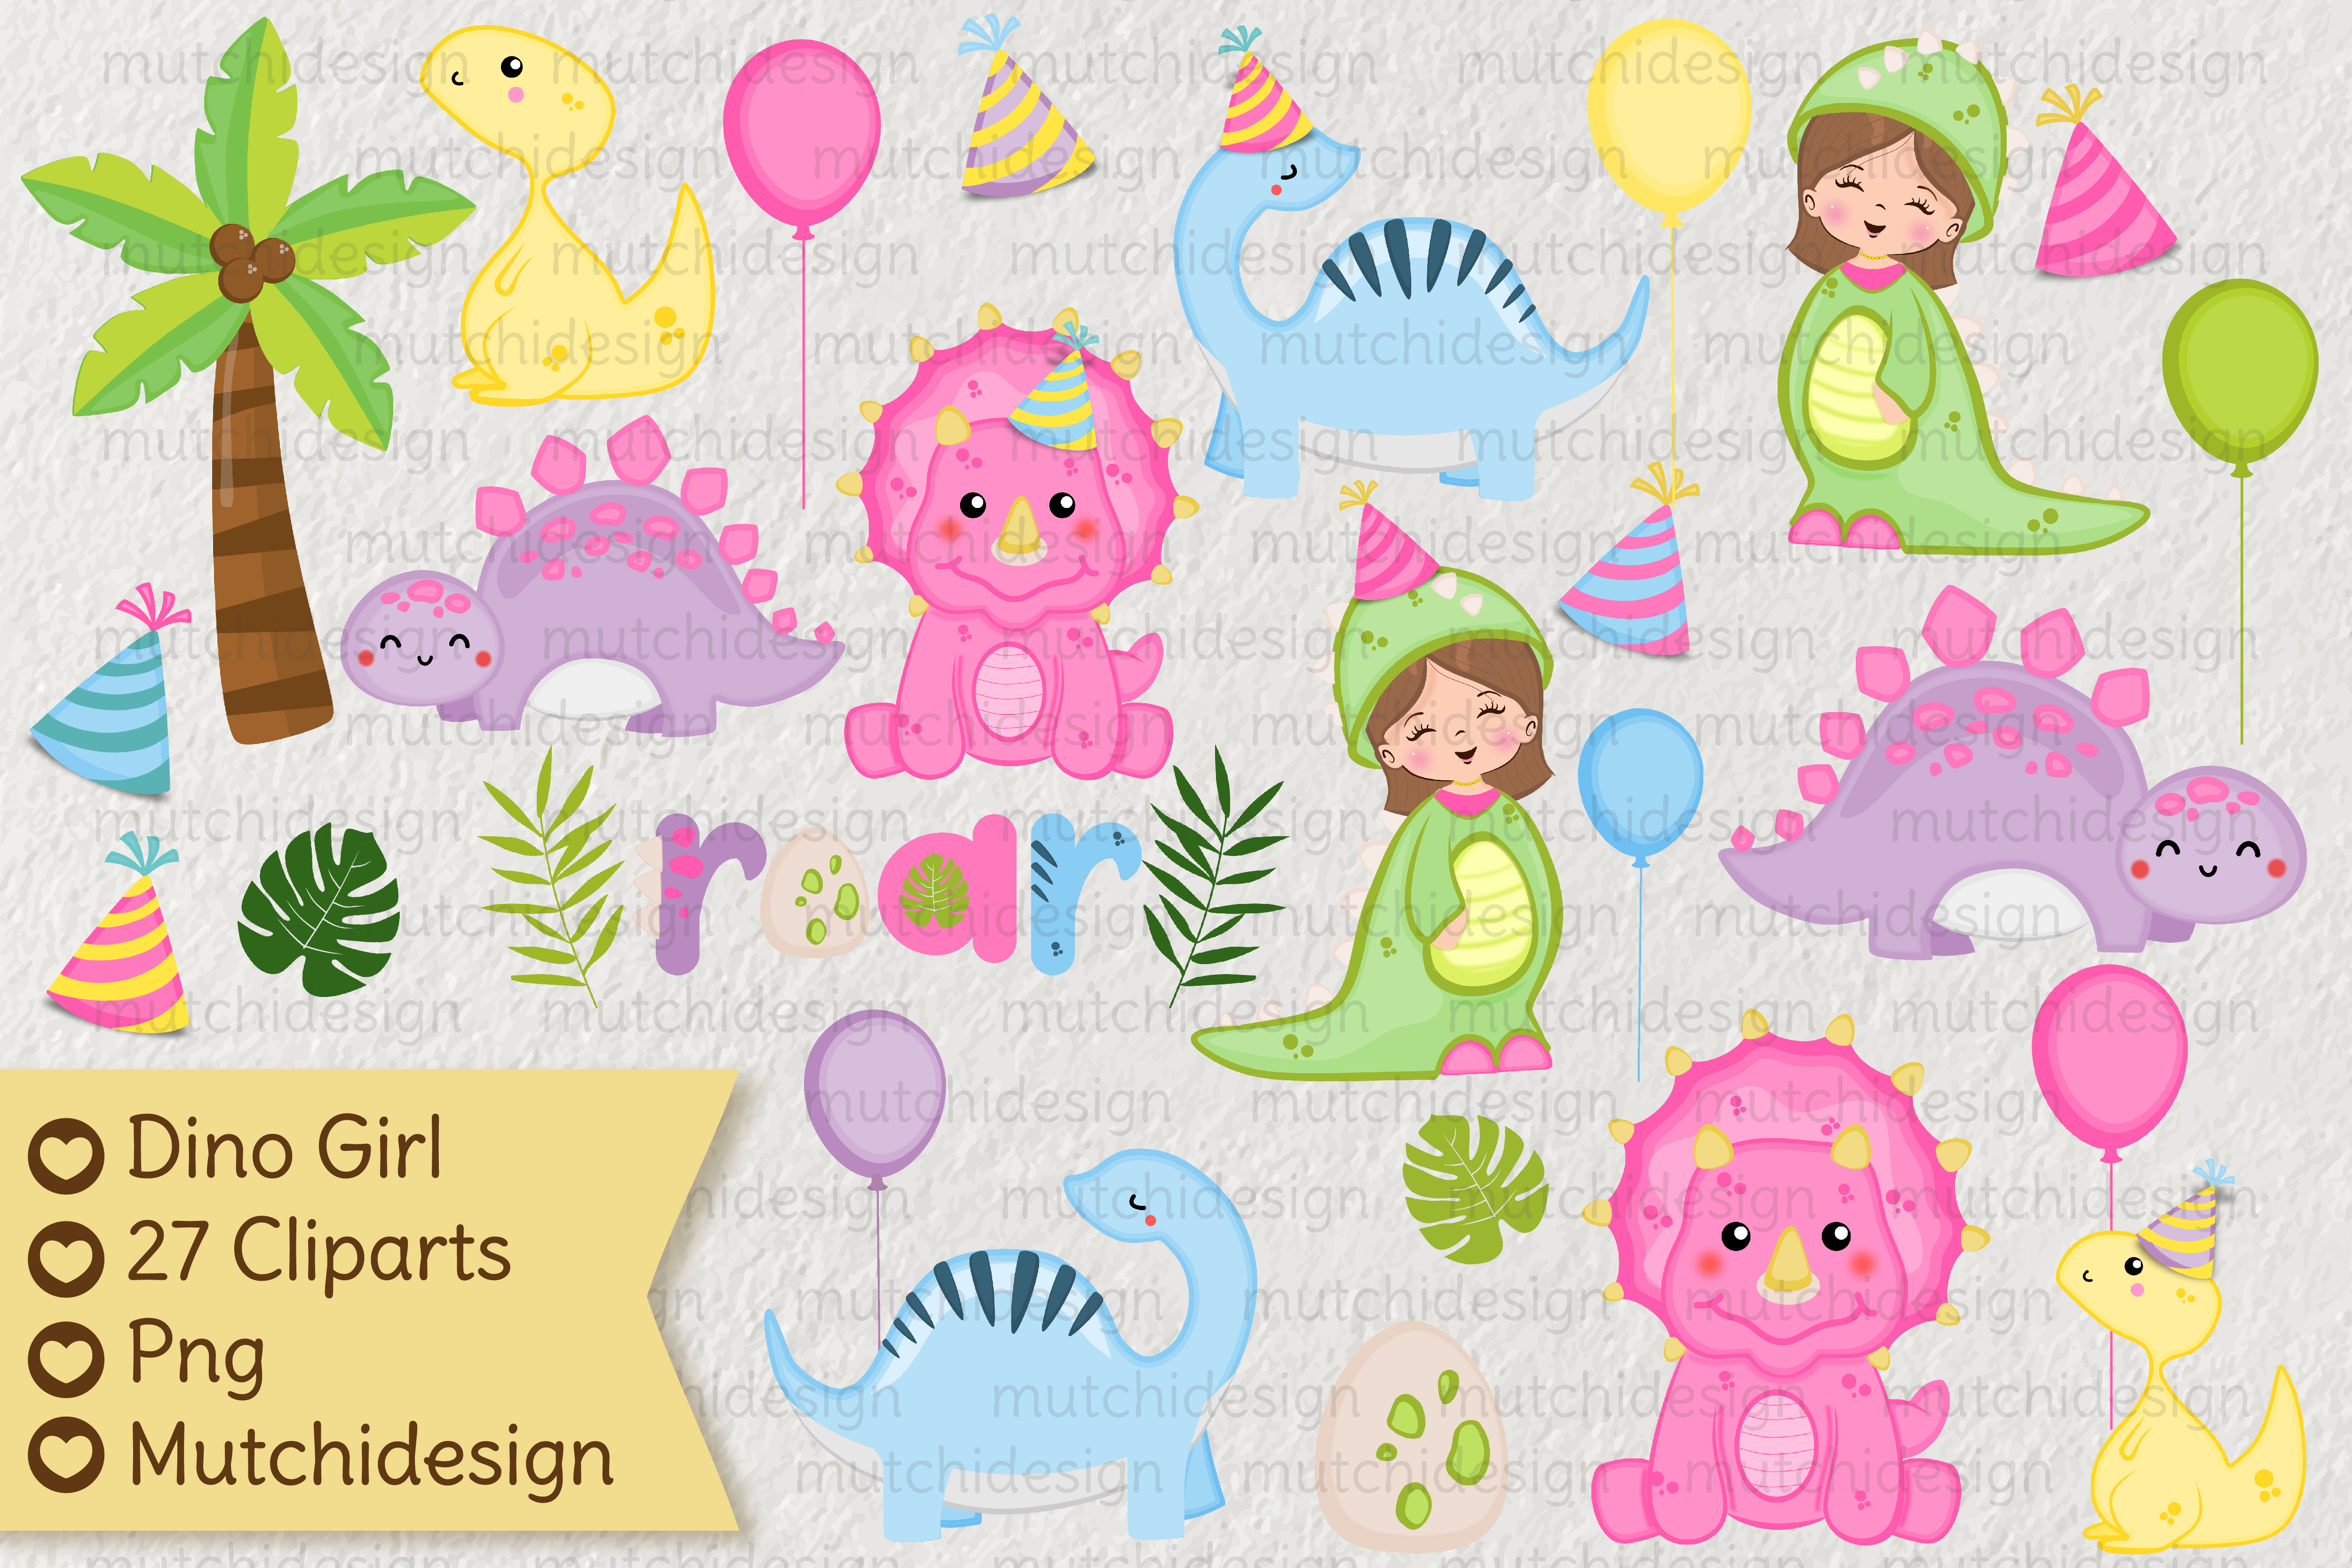 Download Free Dino Girl Cliparts Graphic By Mutchi Design Creative Fabrica for Cricut Explore, Silhouette and other cutting machines.